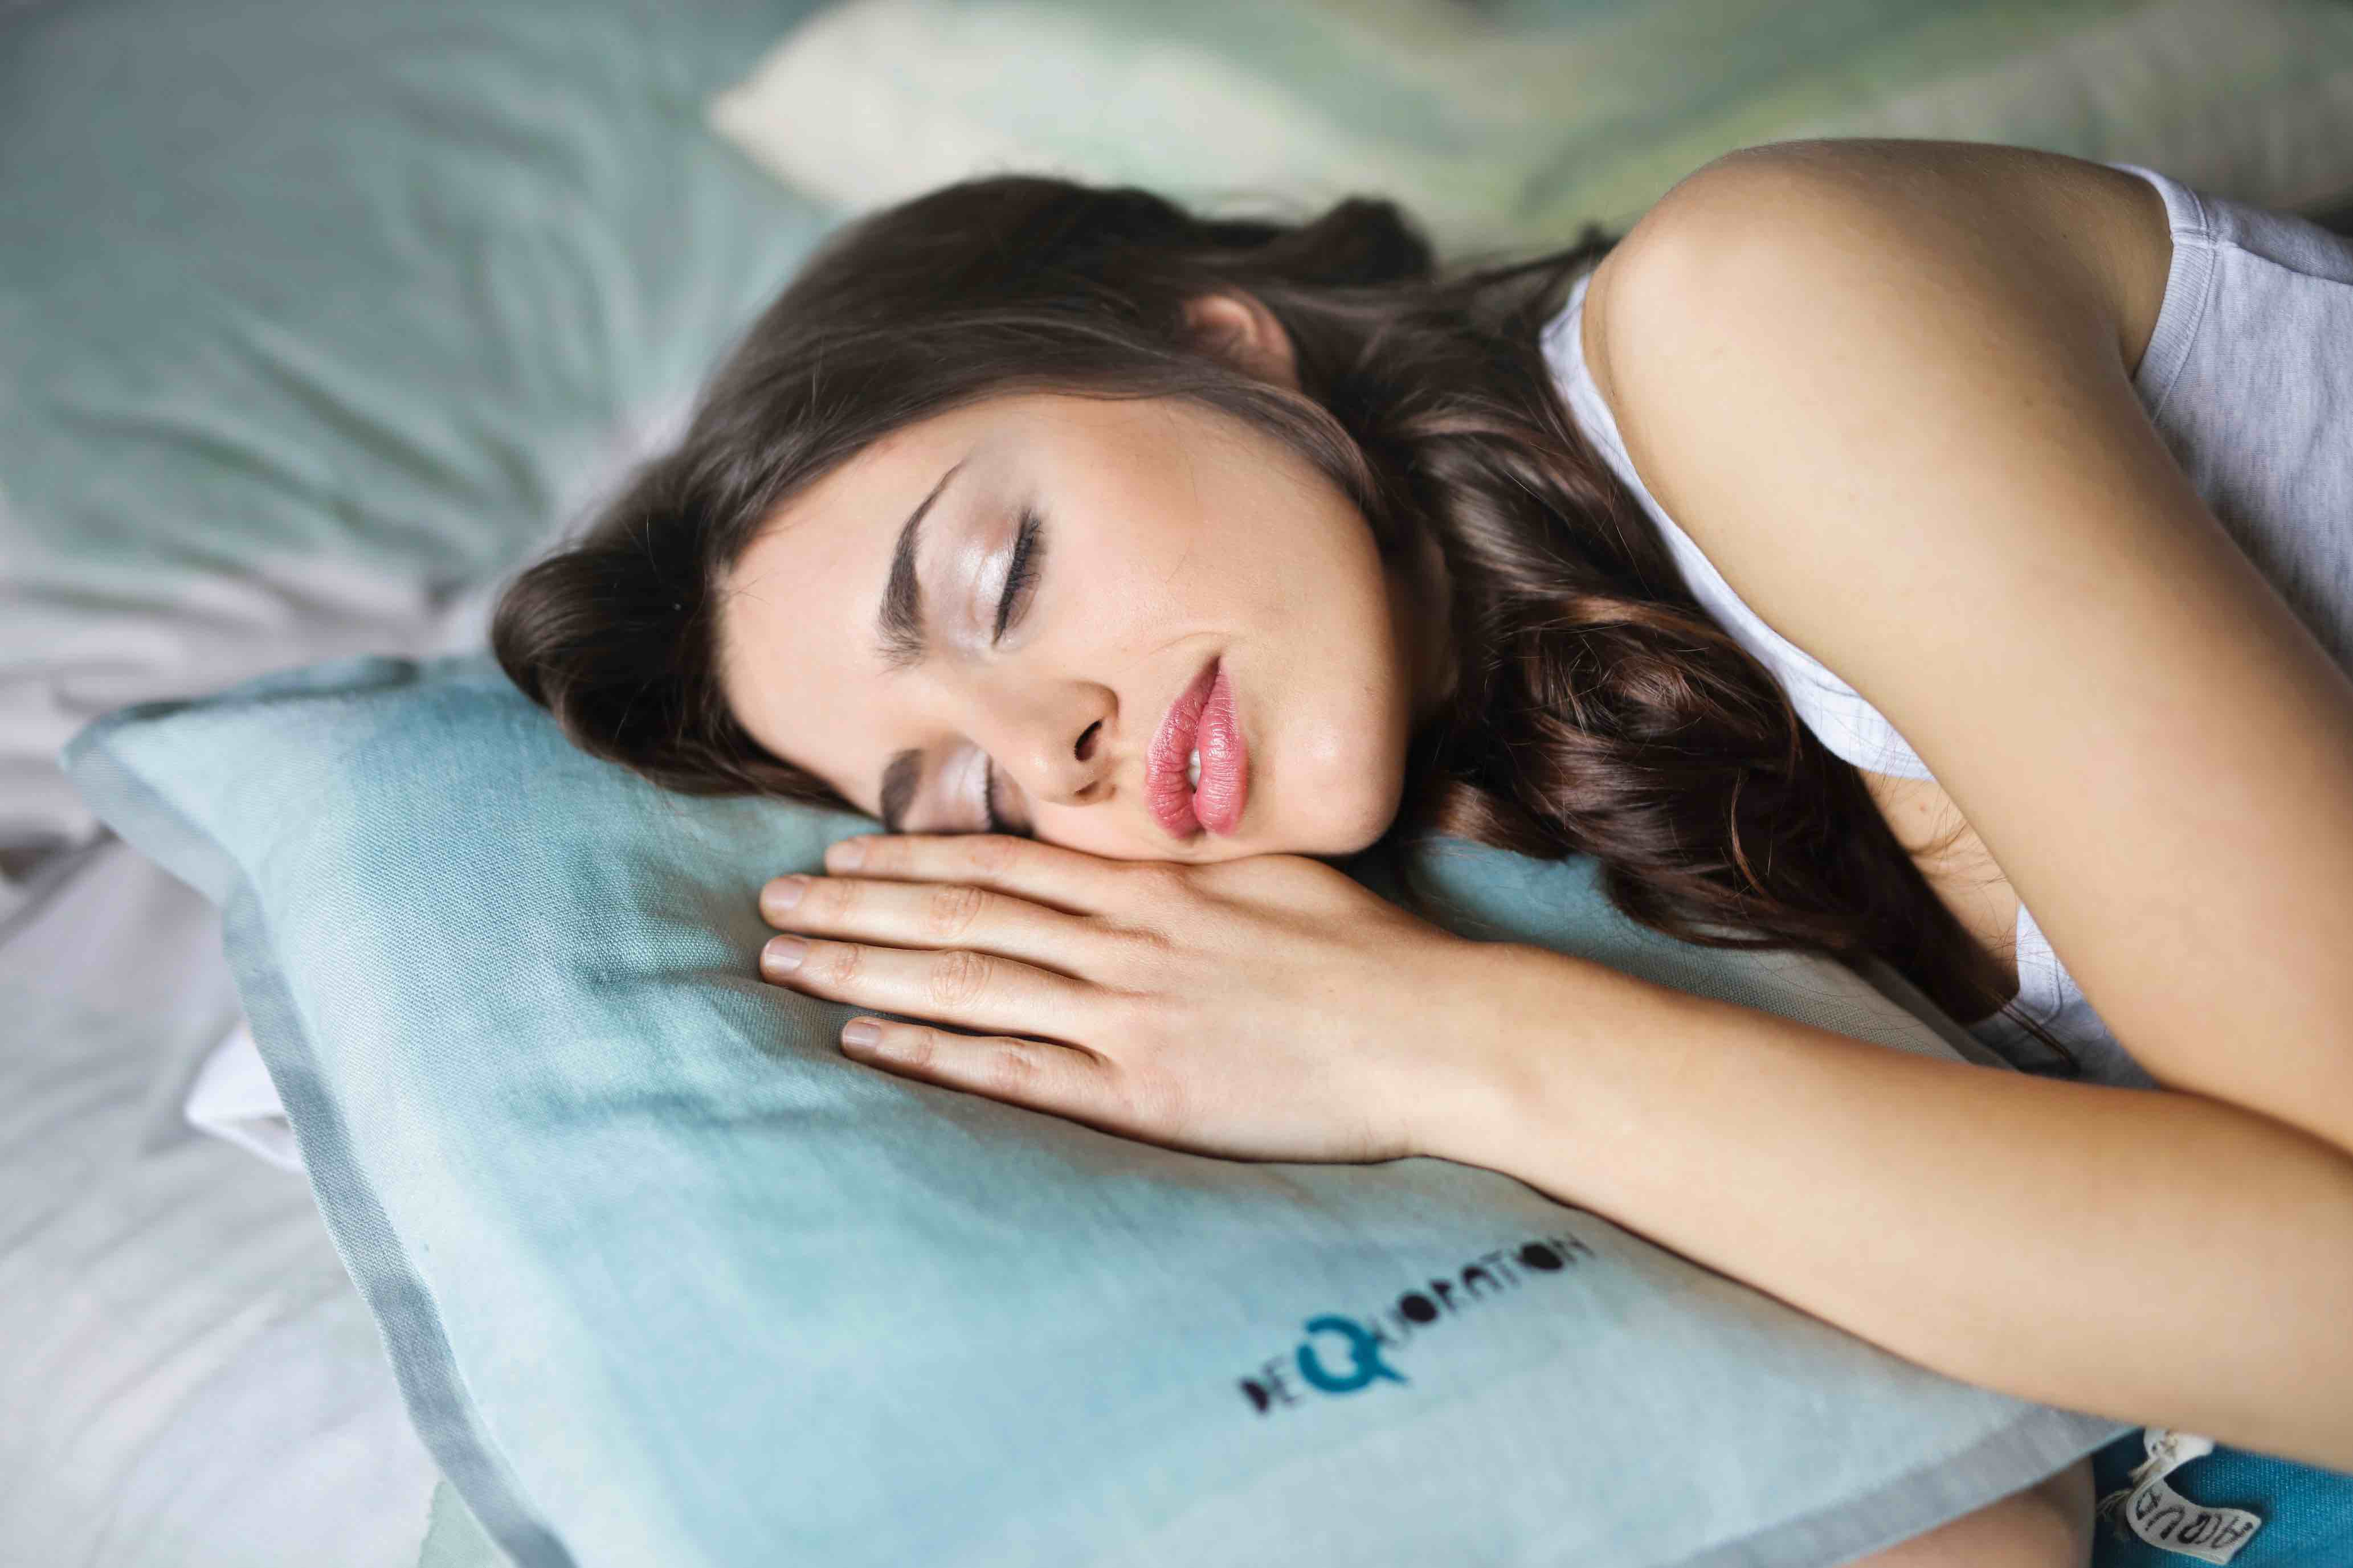 mothers need sleep for managing their childcare, professional and personal duties